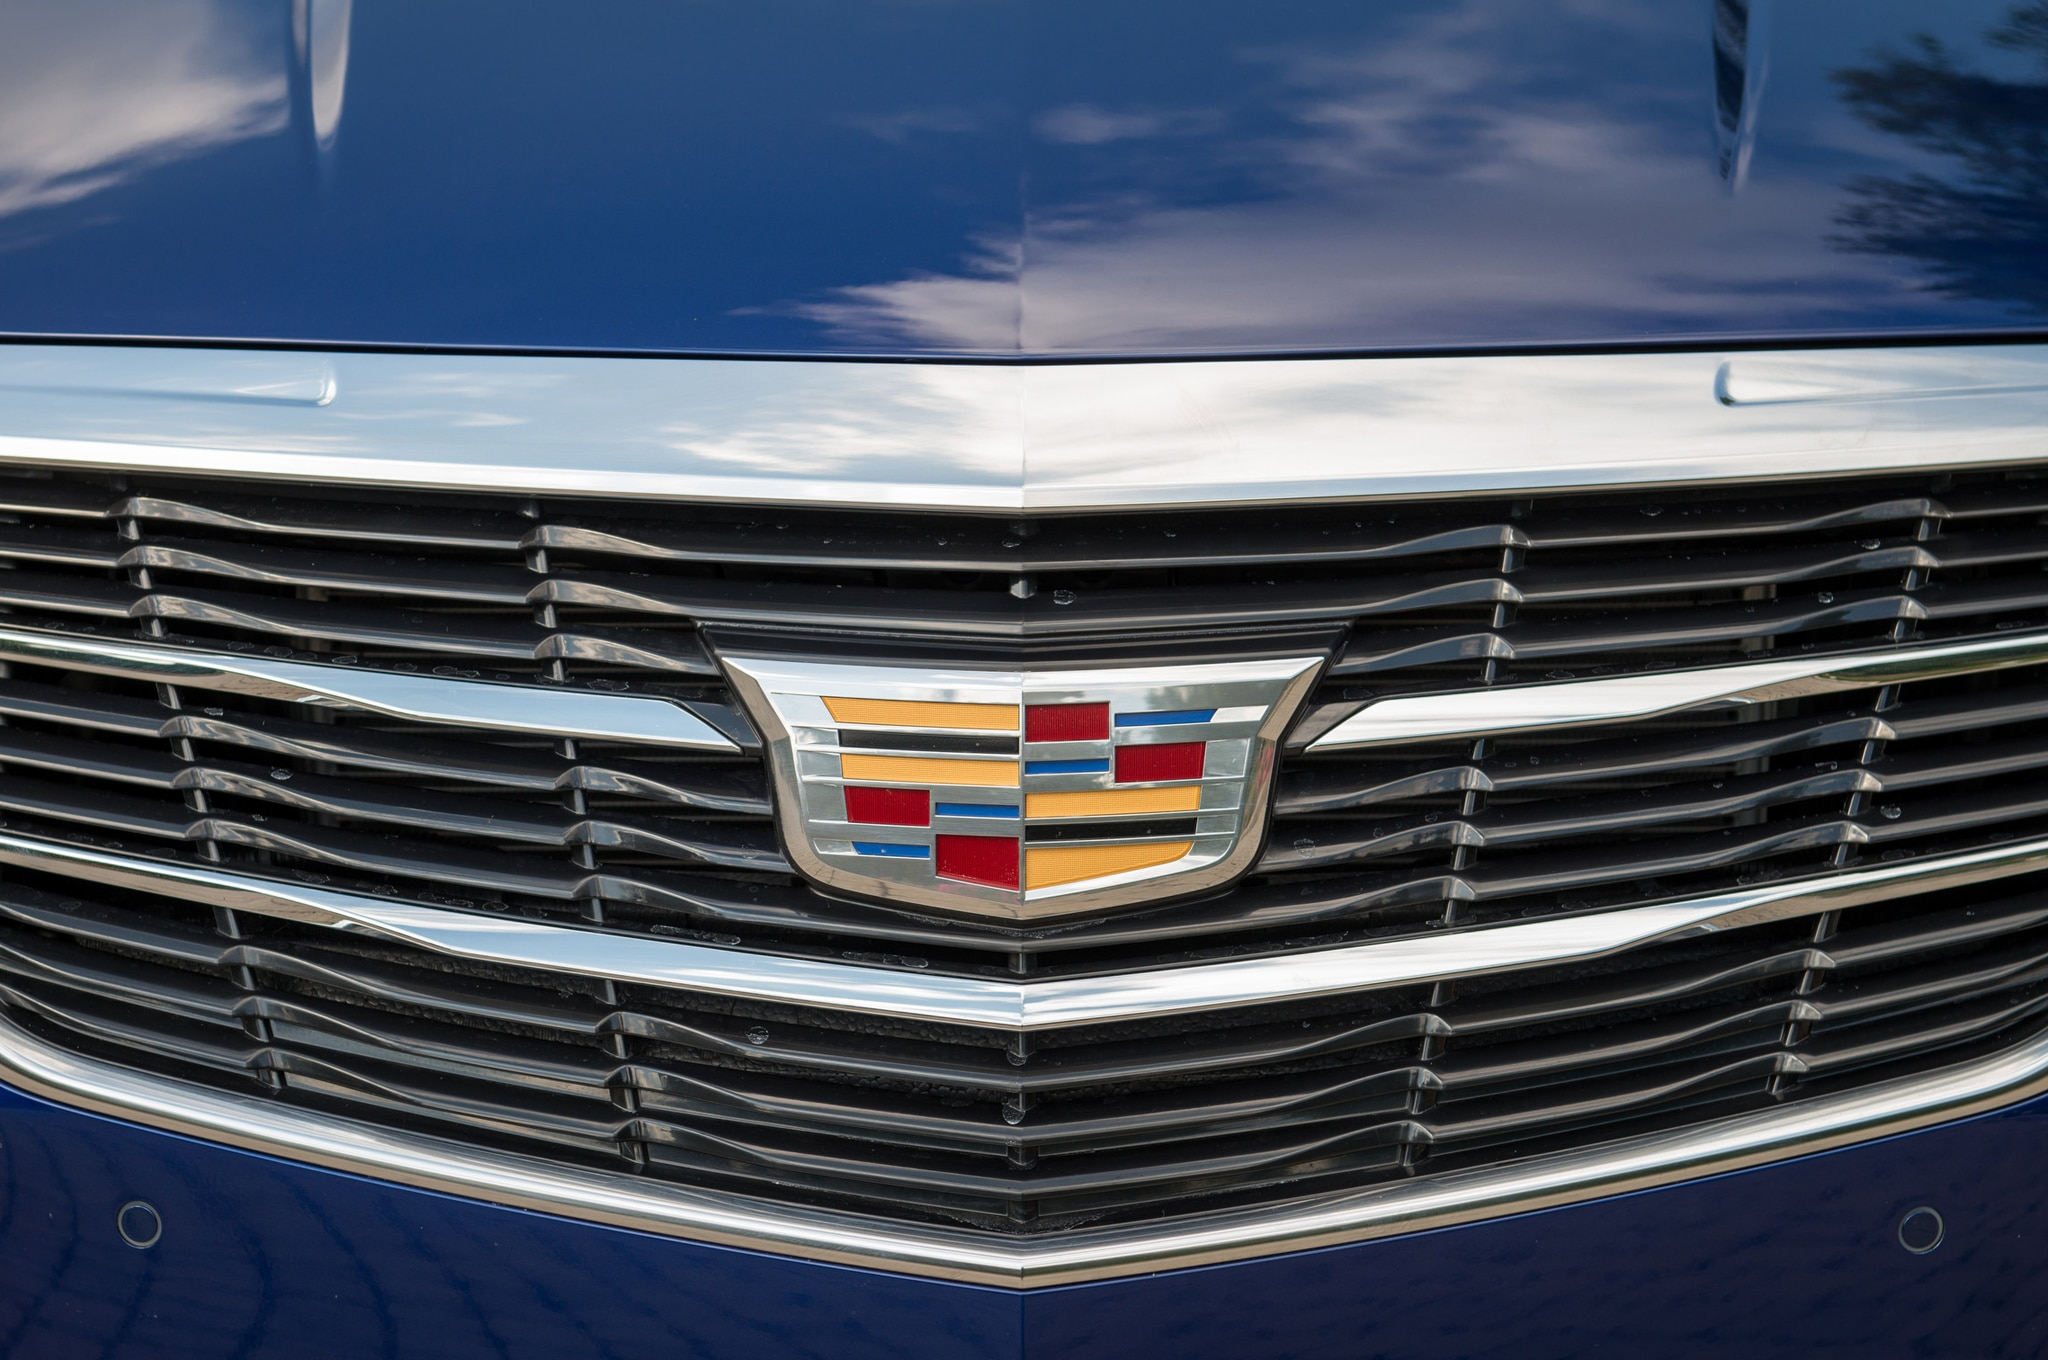 2015 Cadillac ATS Coupe Front Grille